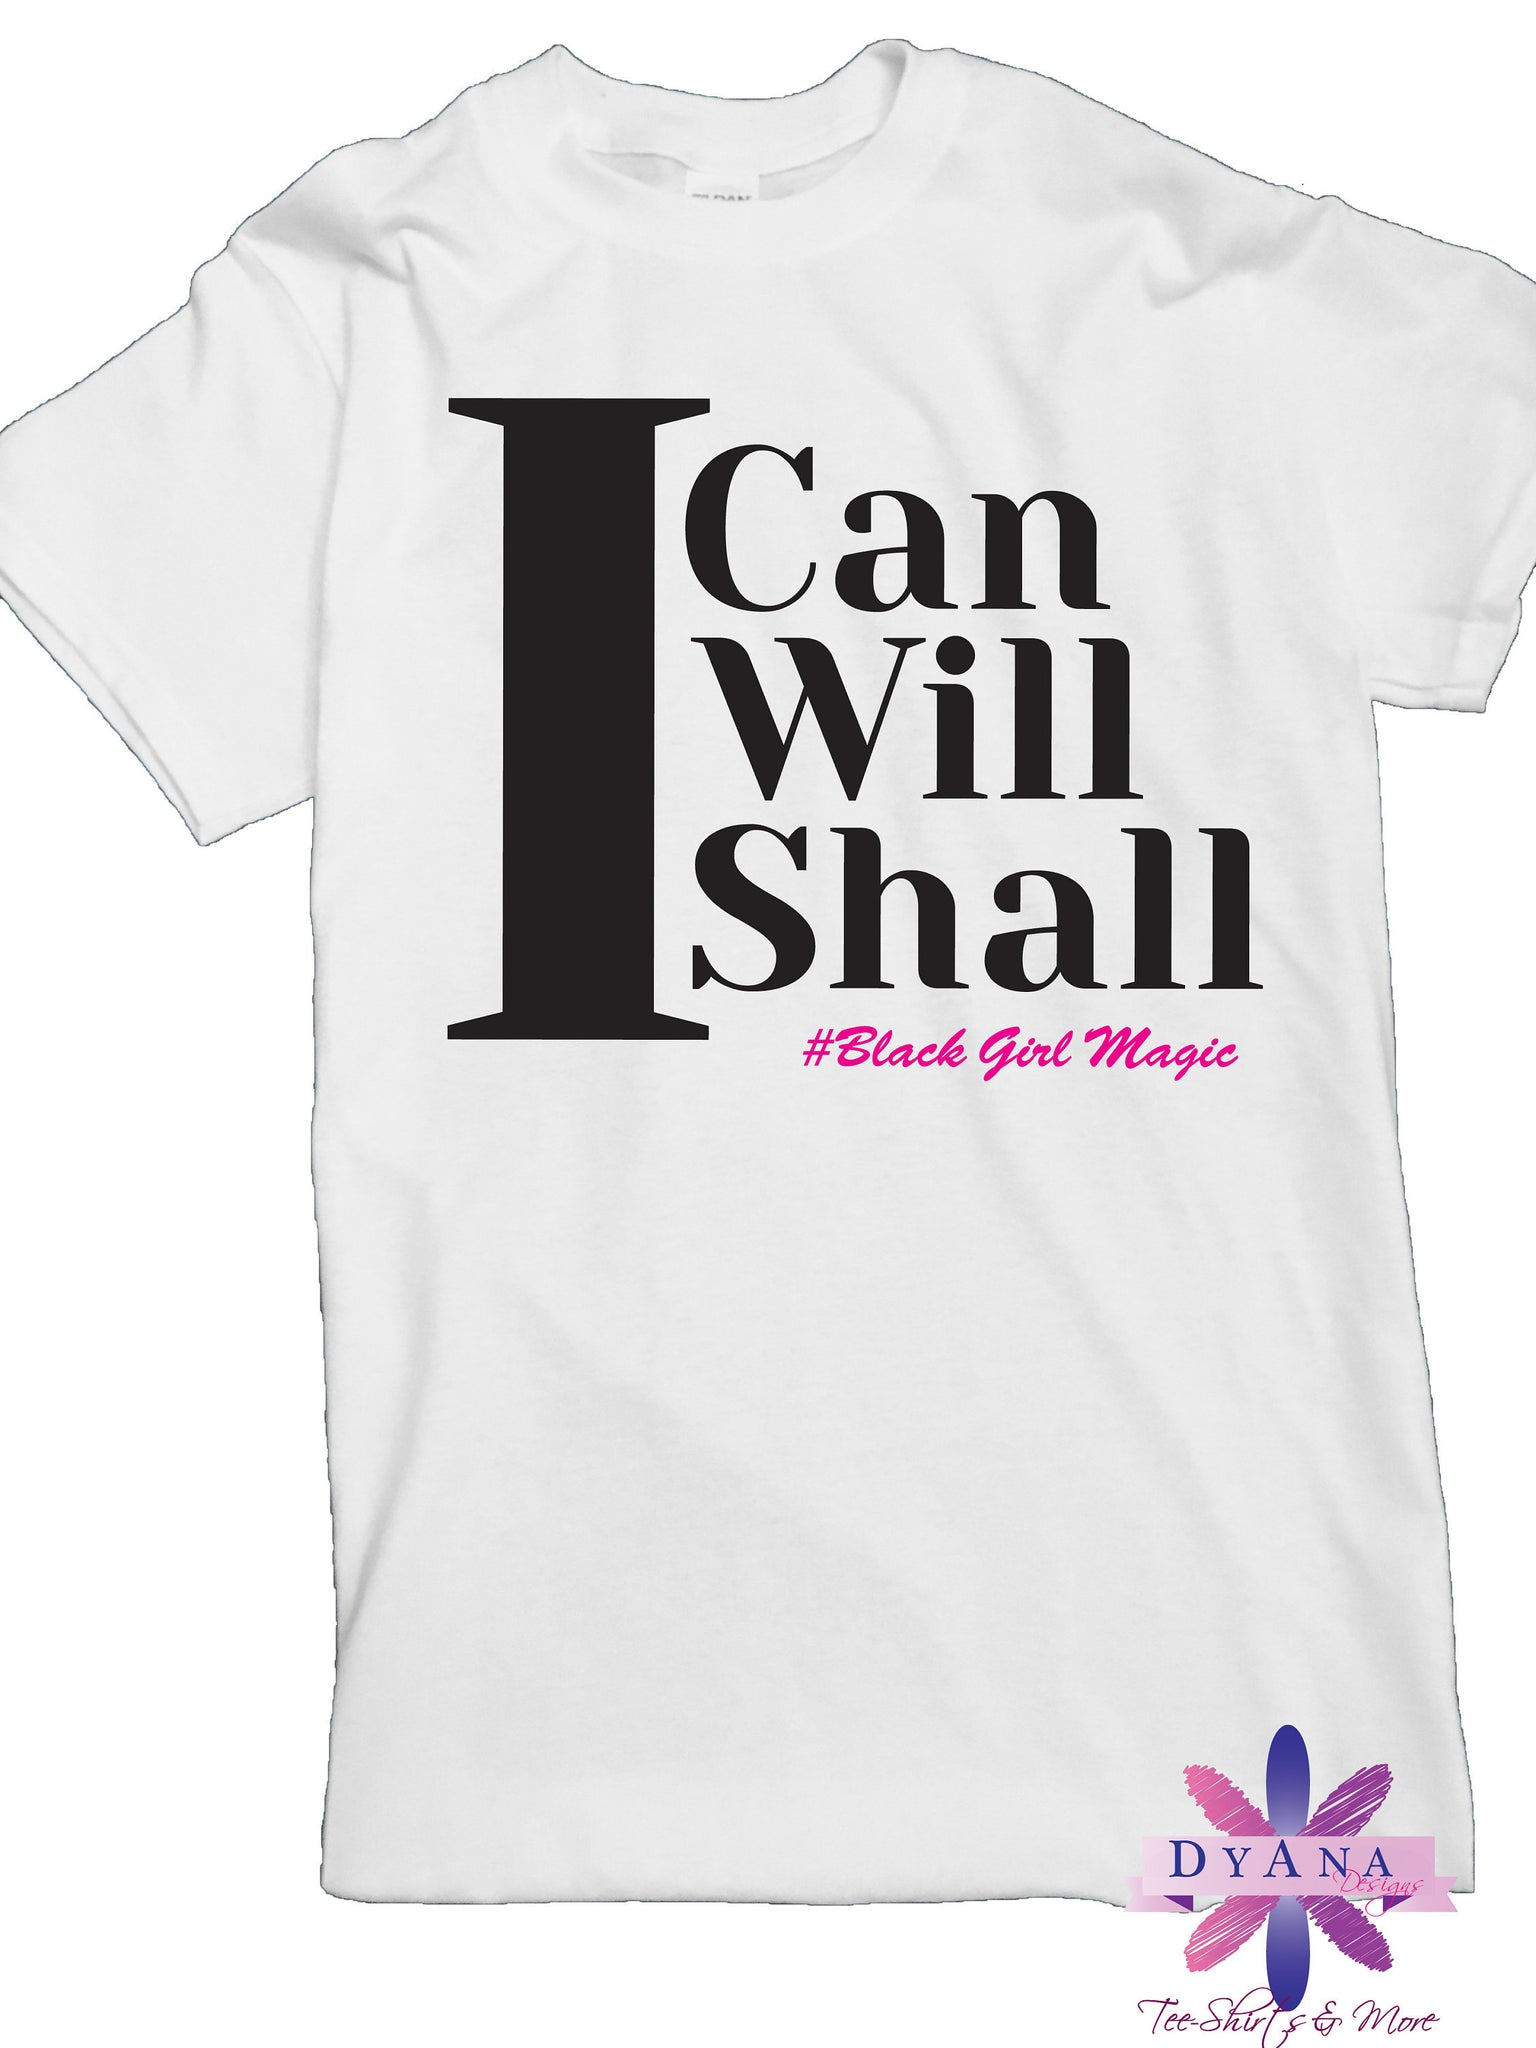 I Can, I Will, I Shall. Woman Shirt. Black Girl Magic. Girl Shirt. Women Empowerment. Mom Shirts. Wife. Gift for Her.